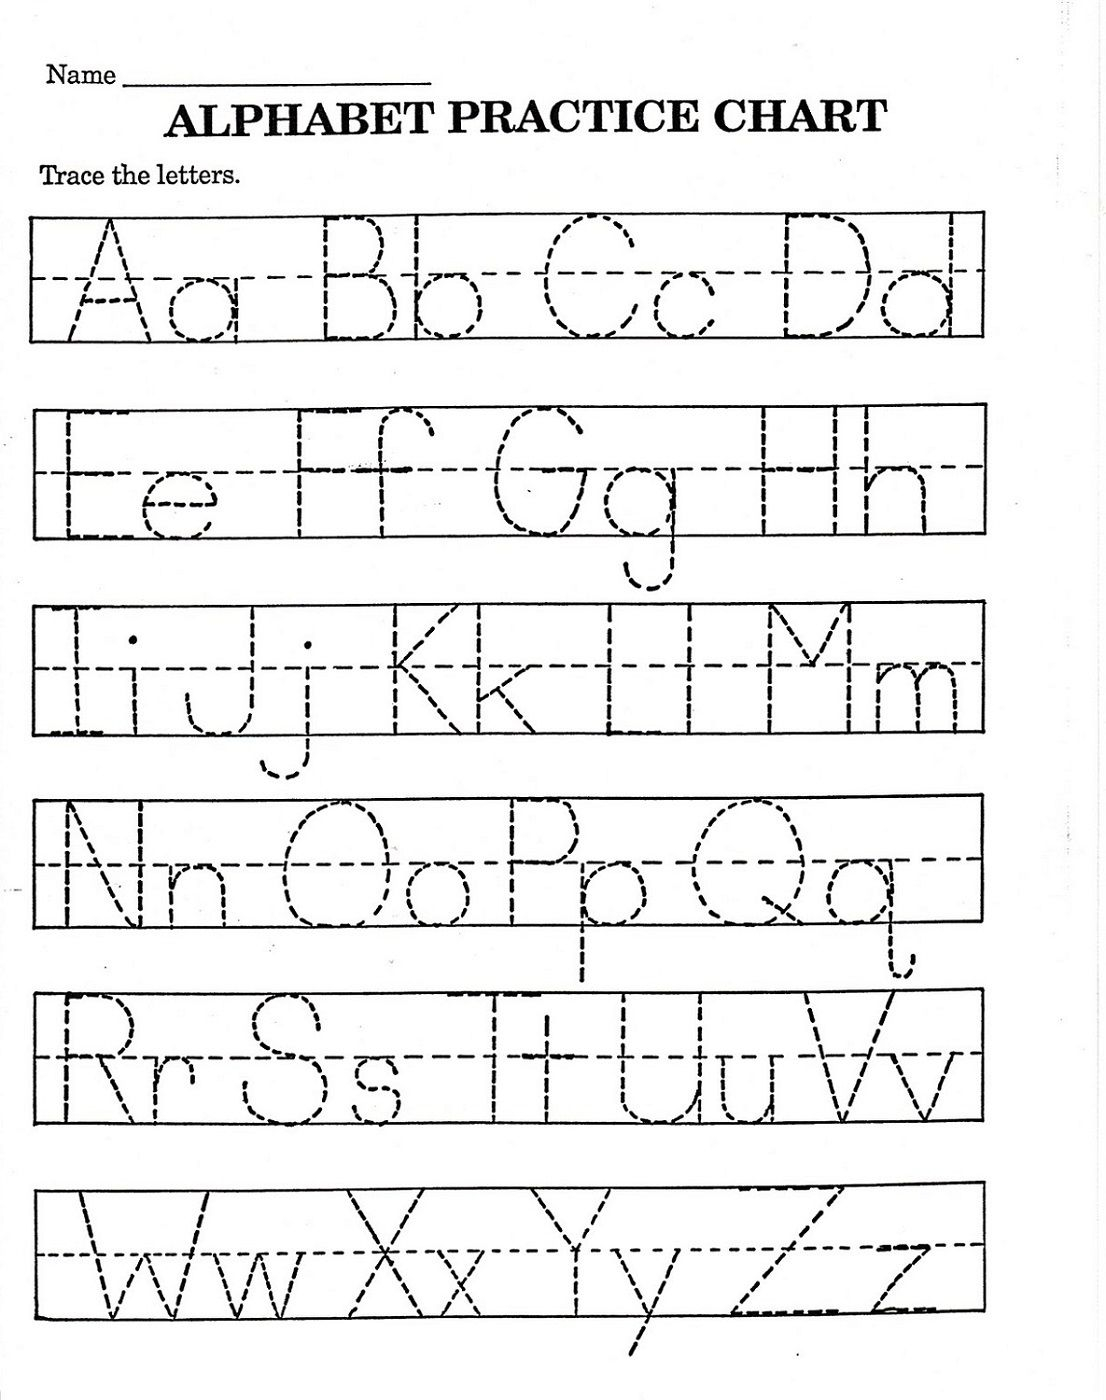 Worksheet ~ Trace Letter Worksheets Free Printable Alphabet